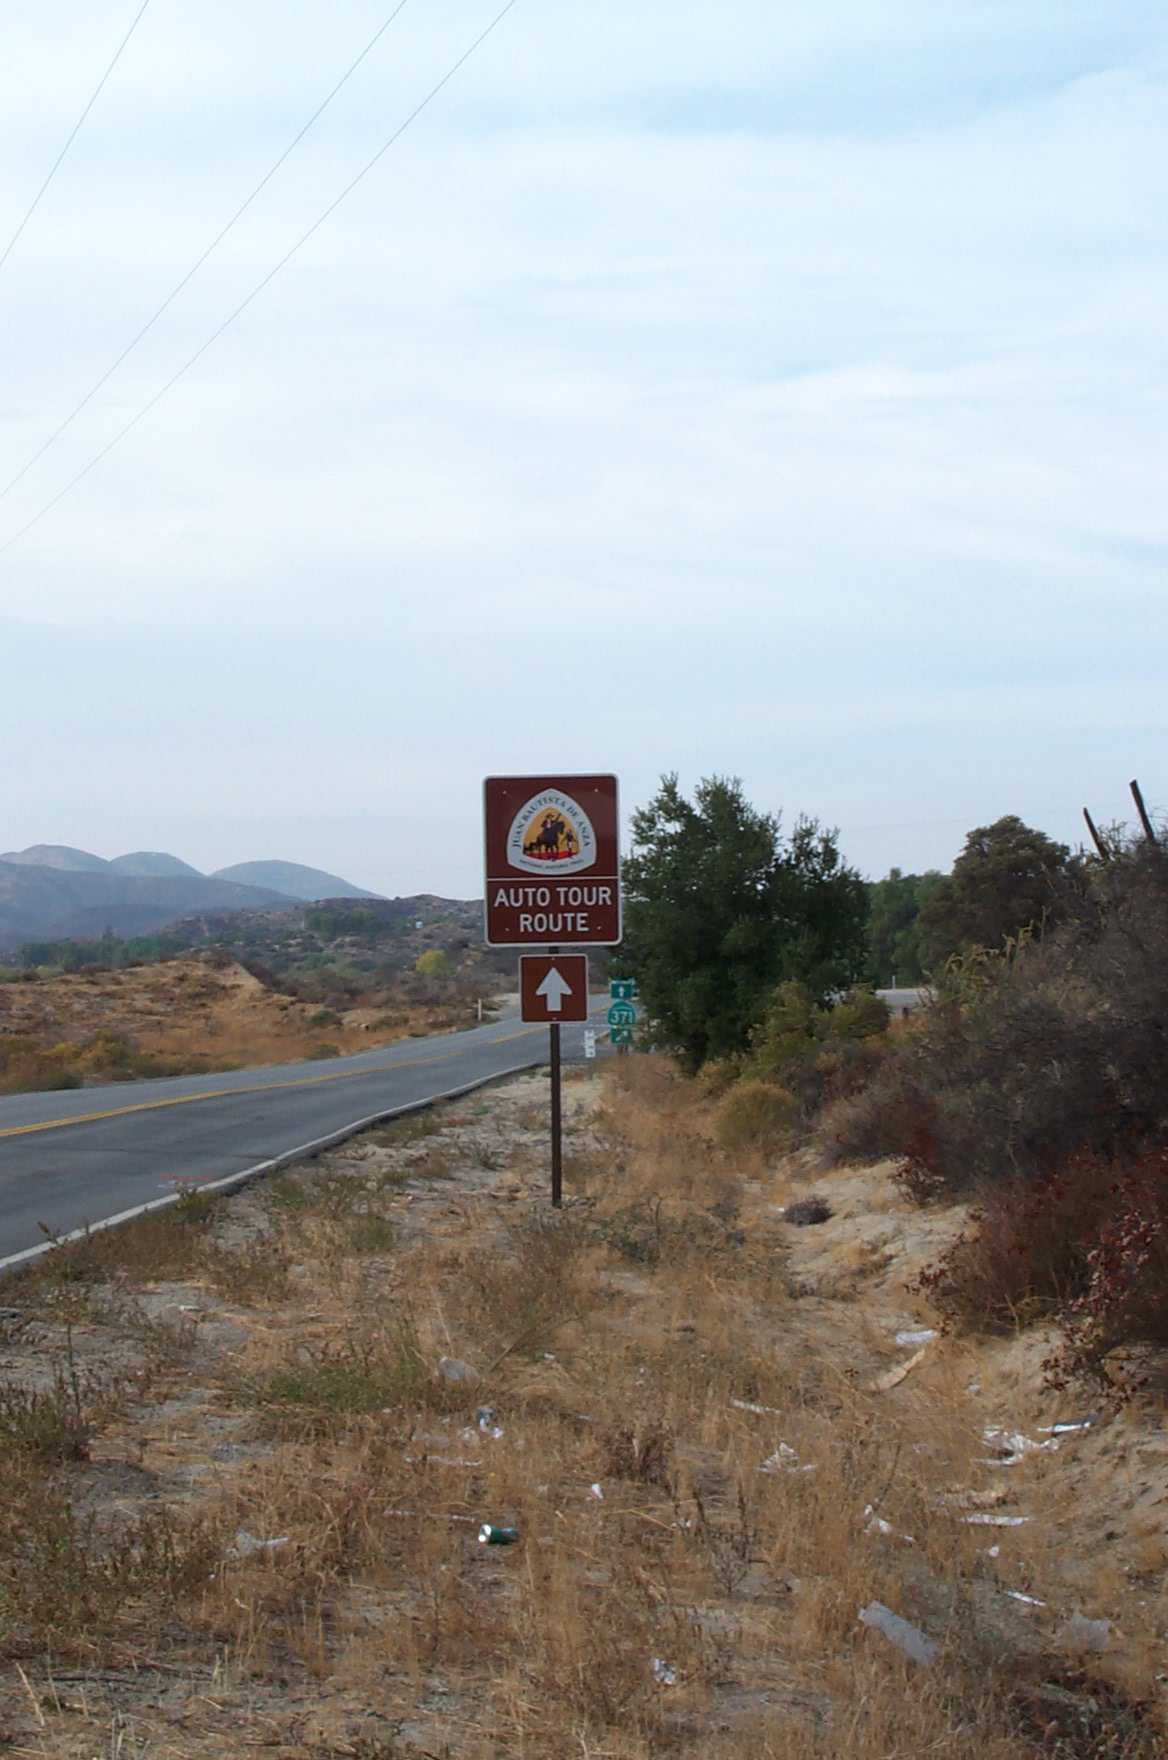 An Anza Trail Auto Route sign along a highway with mountains in the background.